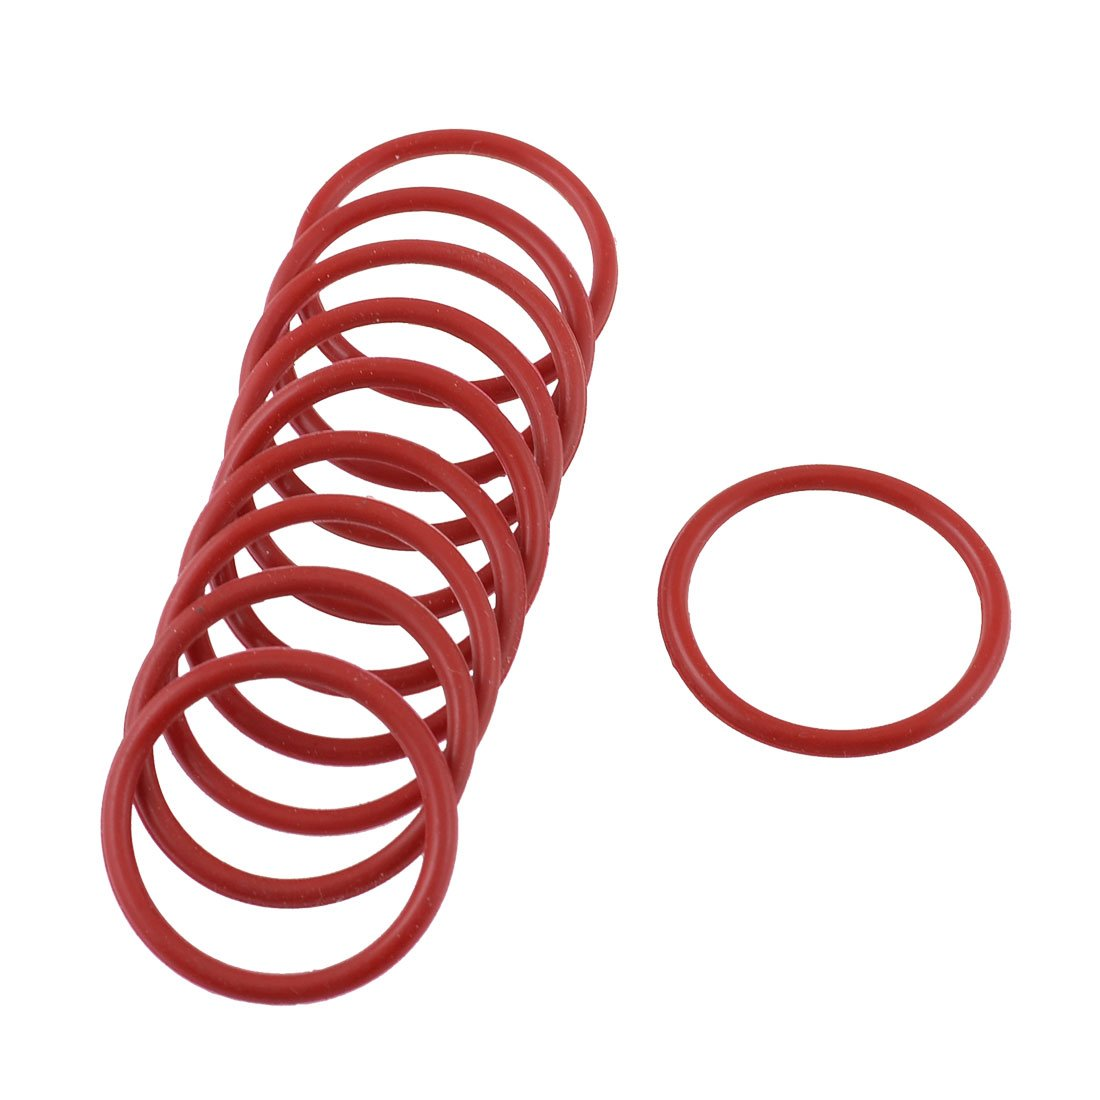 sourcingmap® 50 Pcs 12mm x 8mm x 2mm Rubber O Ring Oil Seal Gasket Replacement Red a14091900ux0057